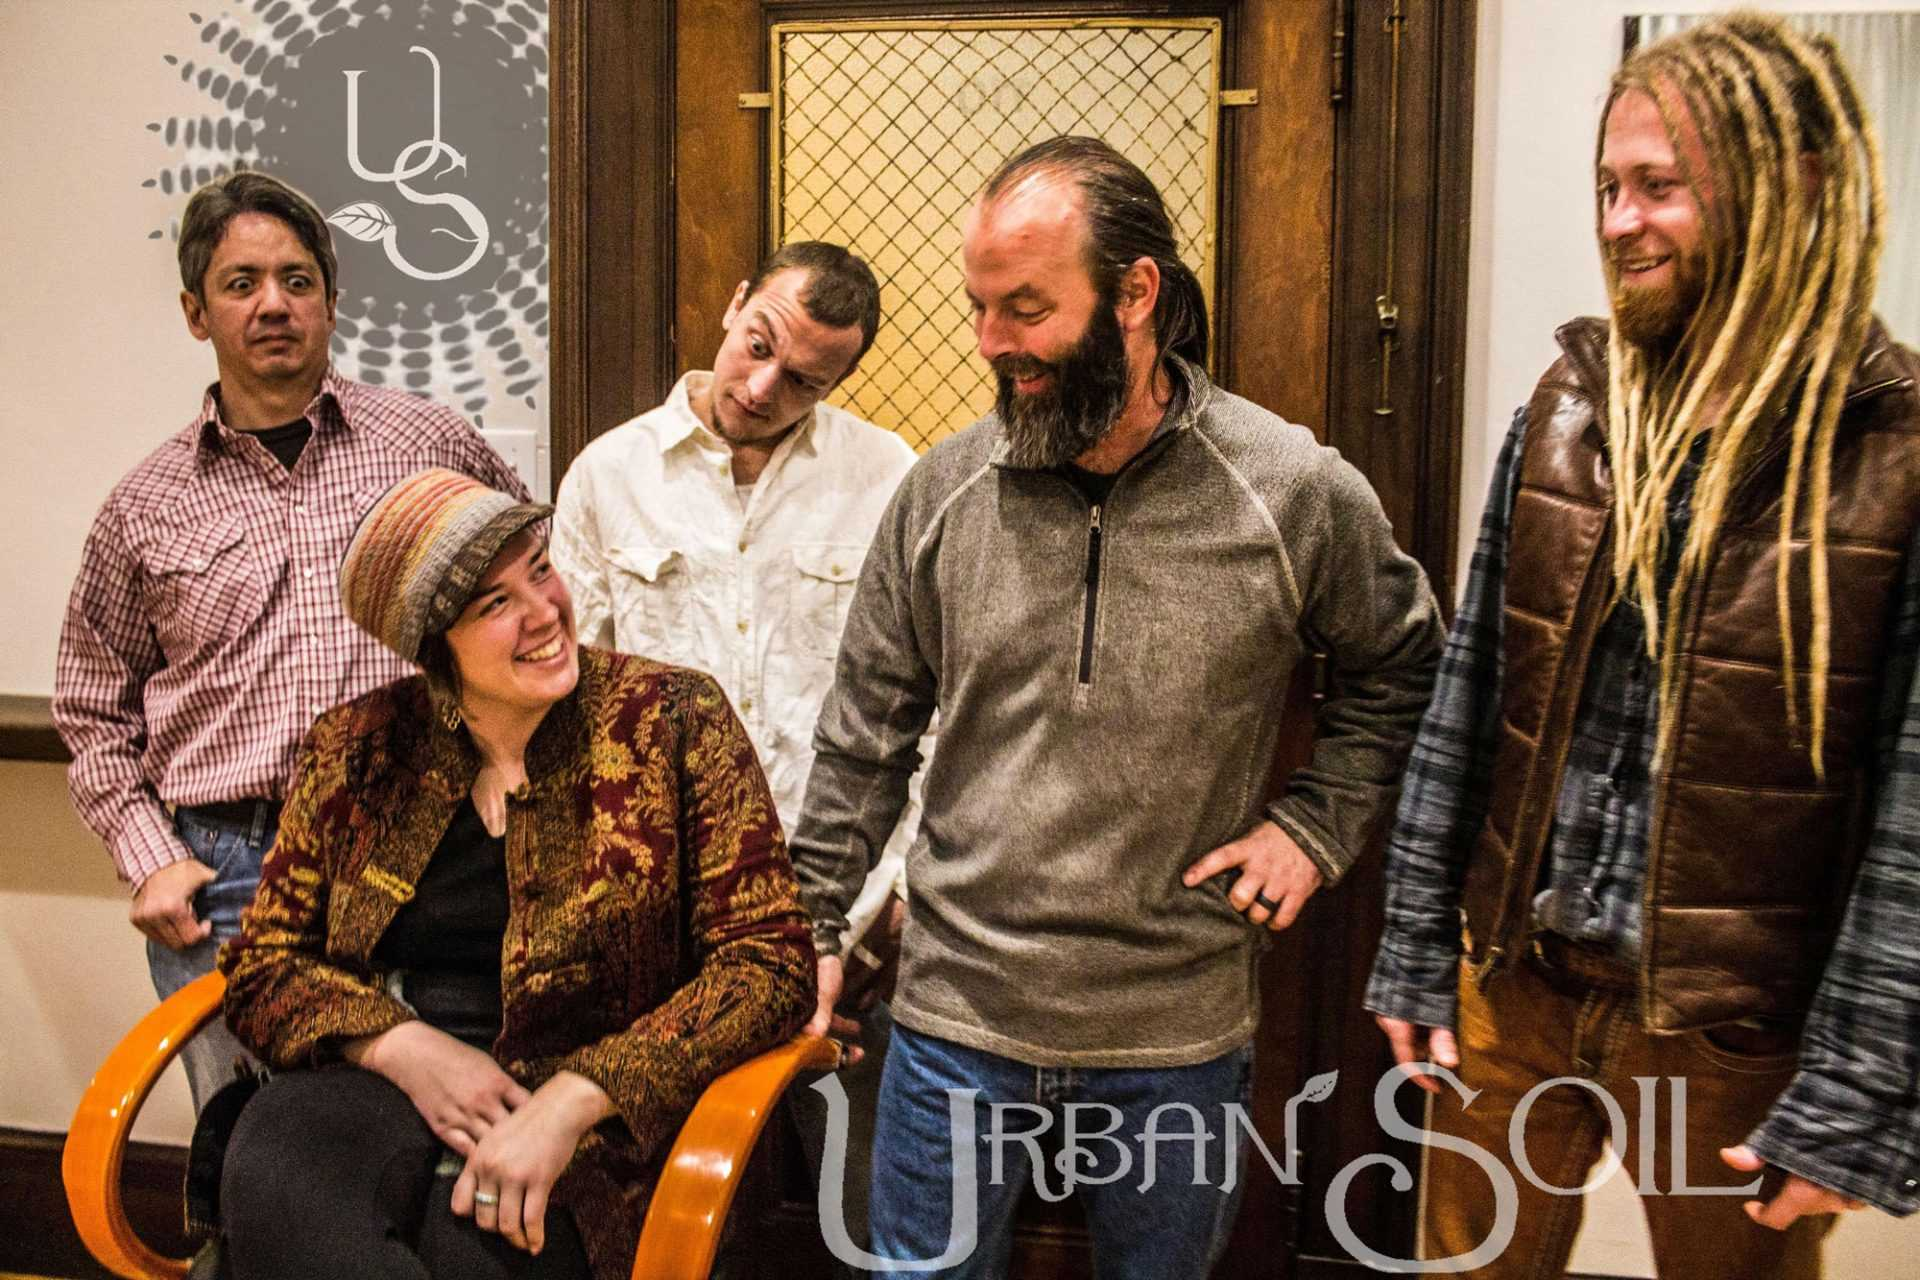 Sarah Reinke, Gregory Meckley, Eric Chesson, Jonathan Wilson, and Leo Kishore make up the band Urban Soil. The band is from Raleigh, NC and they produce Americana, rock, and soul sounding music.